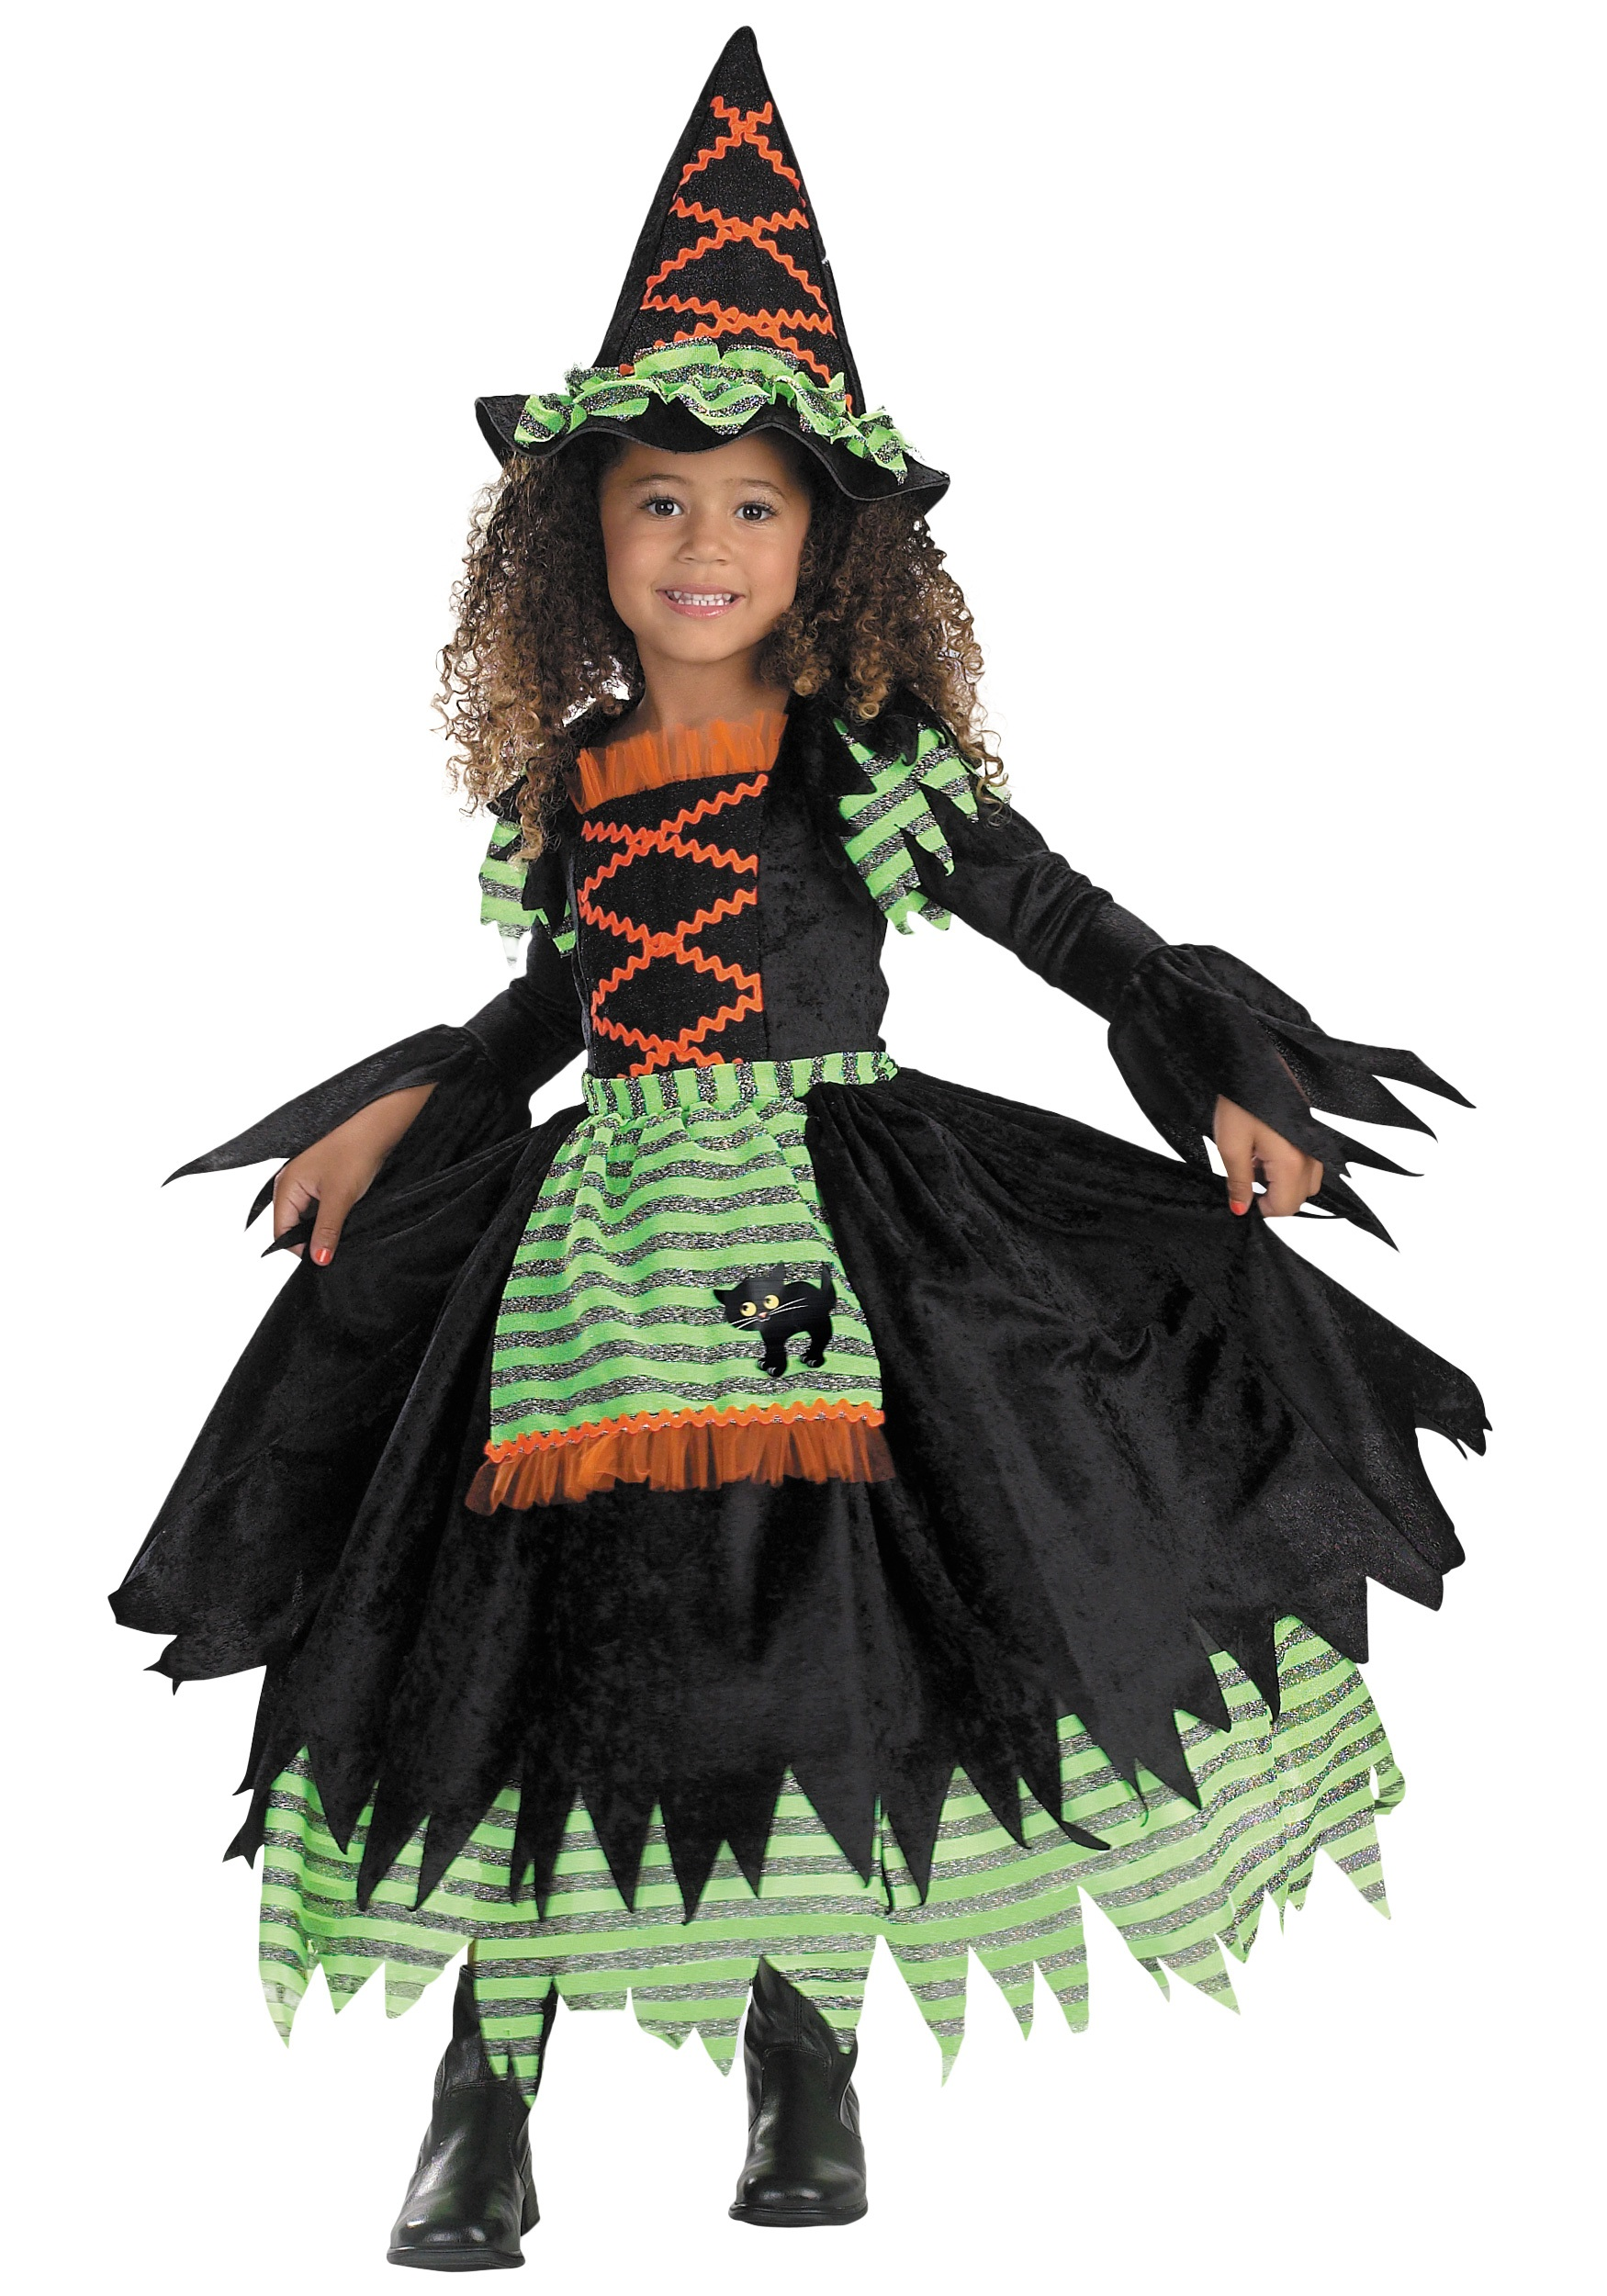 Toddler Storybook Witch Costume  sc 1 st  Halloween Costume & Toddler Storybook Witch Costume - Cute Witch Costumes for Kids